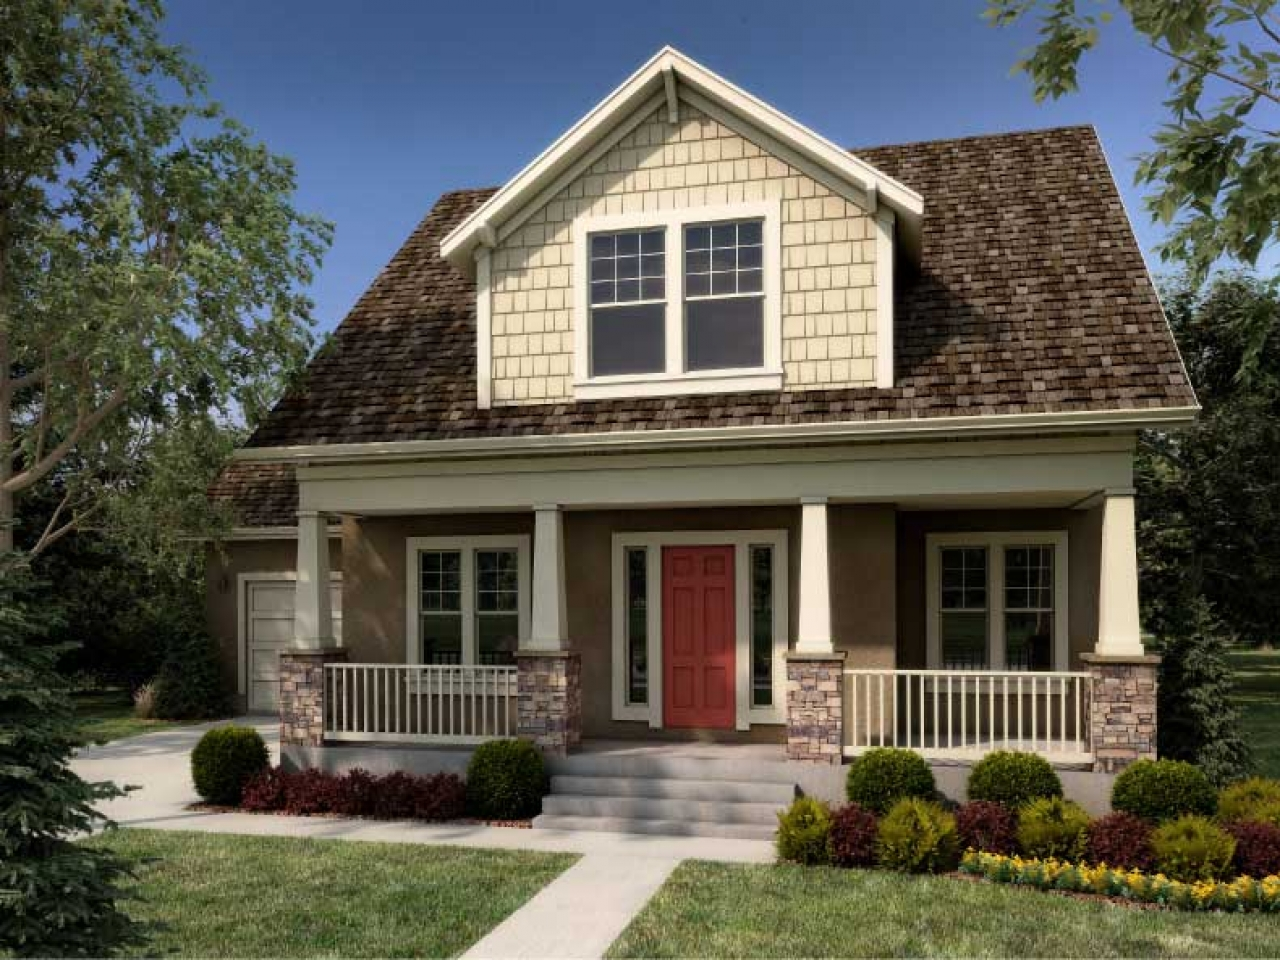 Craftsman home design craftsman one story home designs for Craftsman style homes for sale dallas tx